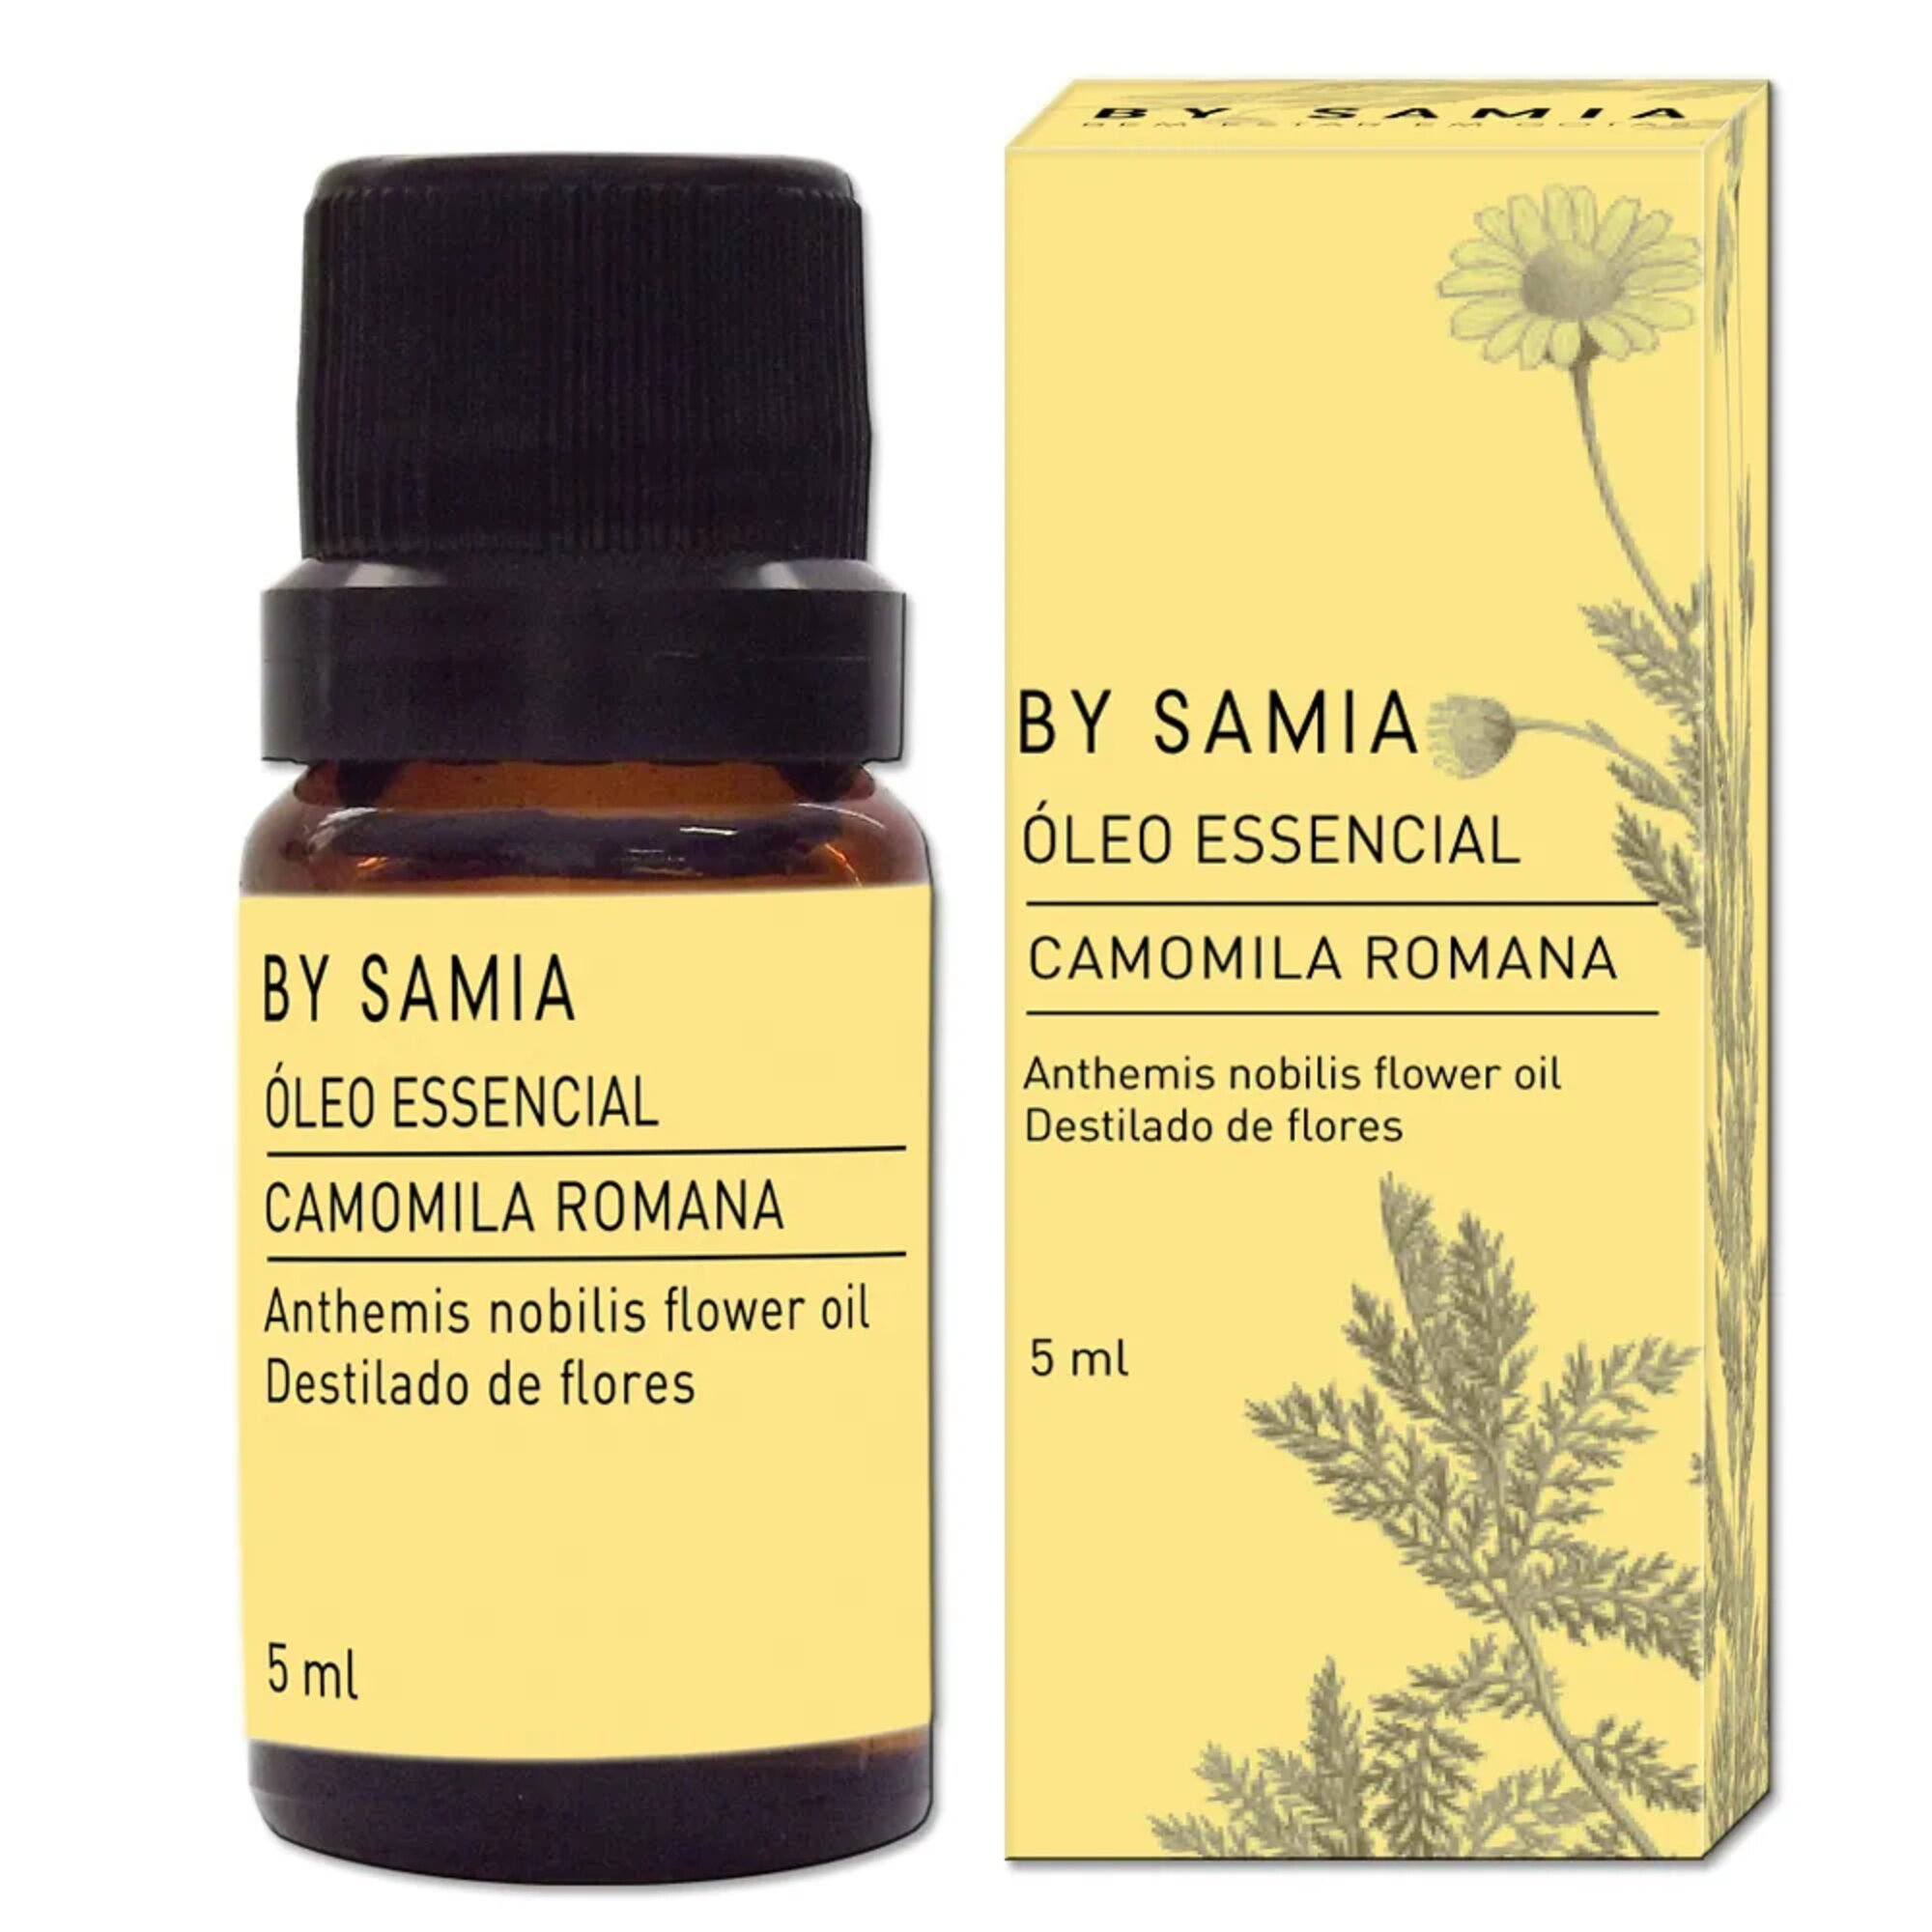 Óleo Essencial Camomila Romana 5mL By Samia